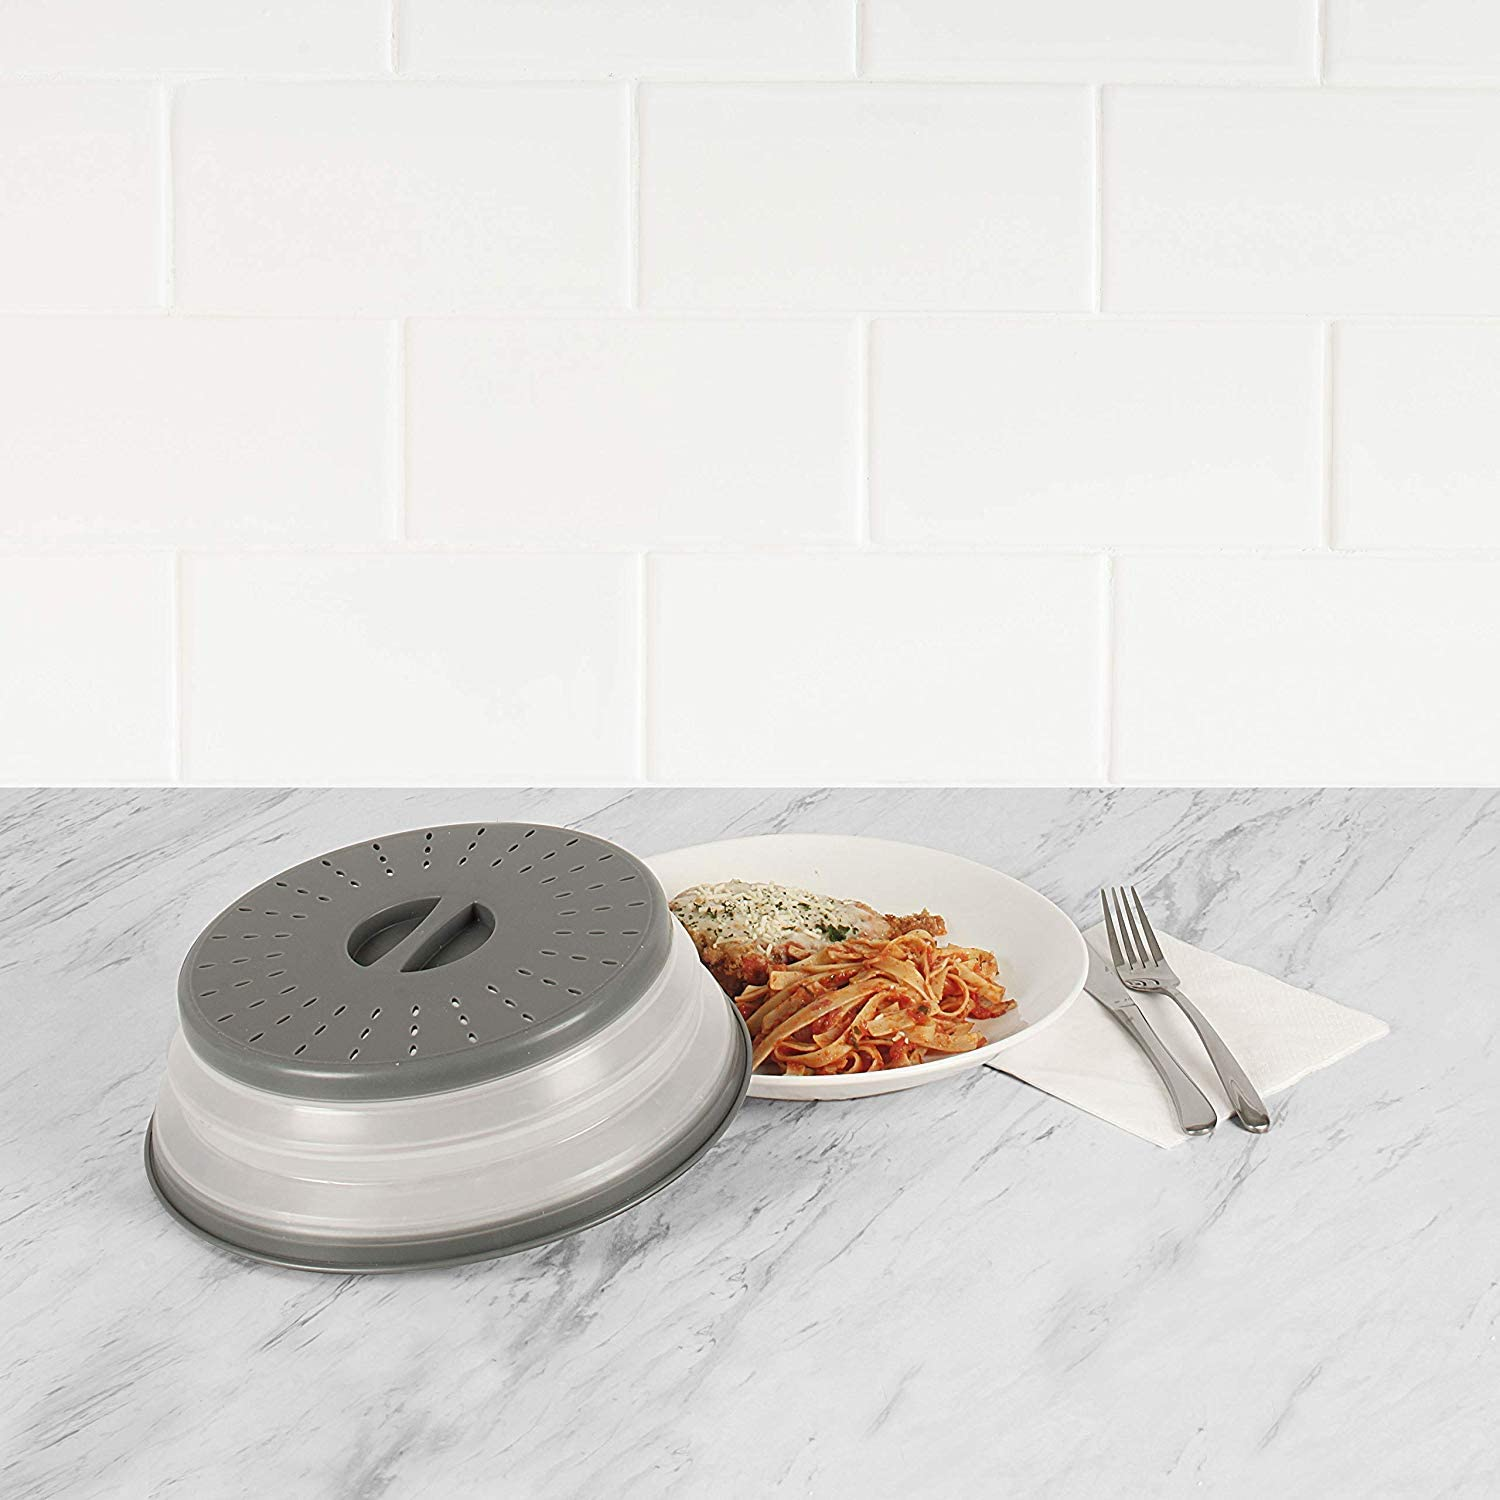 """Tovolo 81-31531 Vented Collapsible Microwave Splatter Proof Food Plate Cover With Easy Grip Handle Dishwasher-Safe, BPA-Free Silicone & Plastic, 10.5"""" Round, Charcoal Gray"""